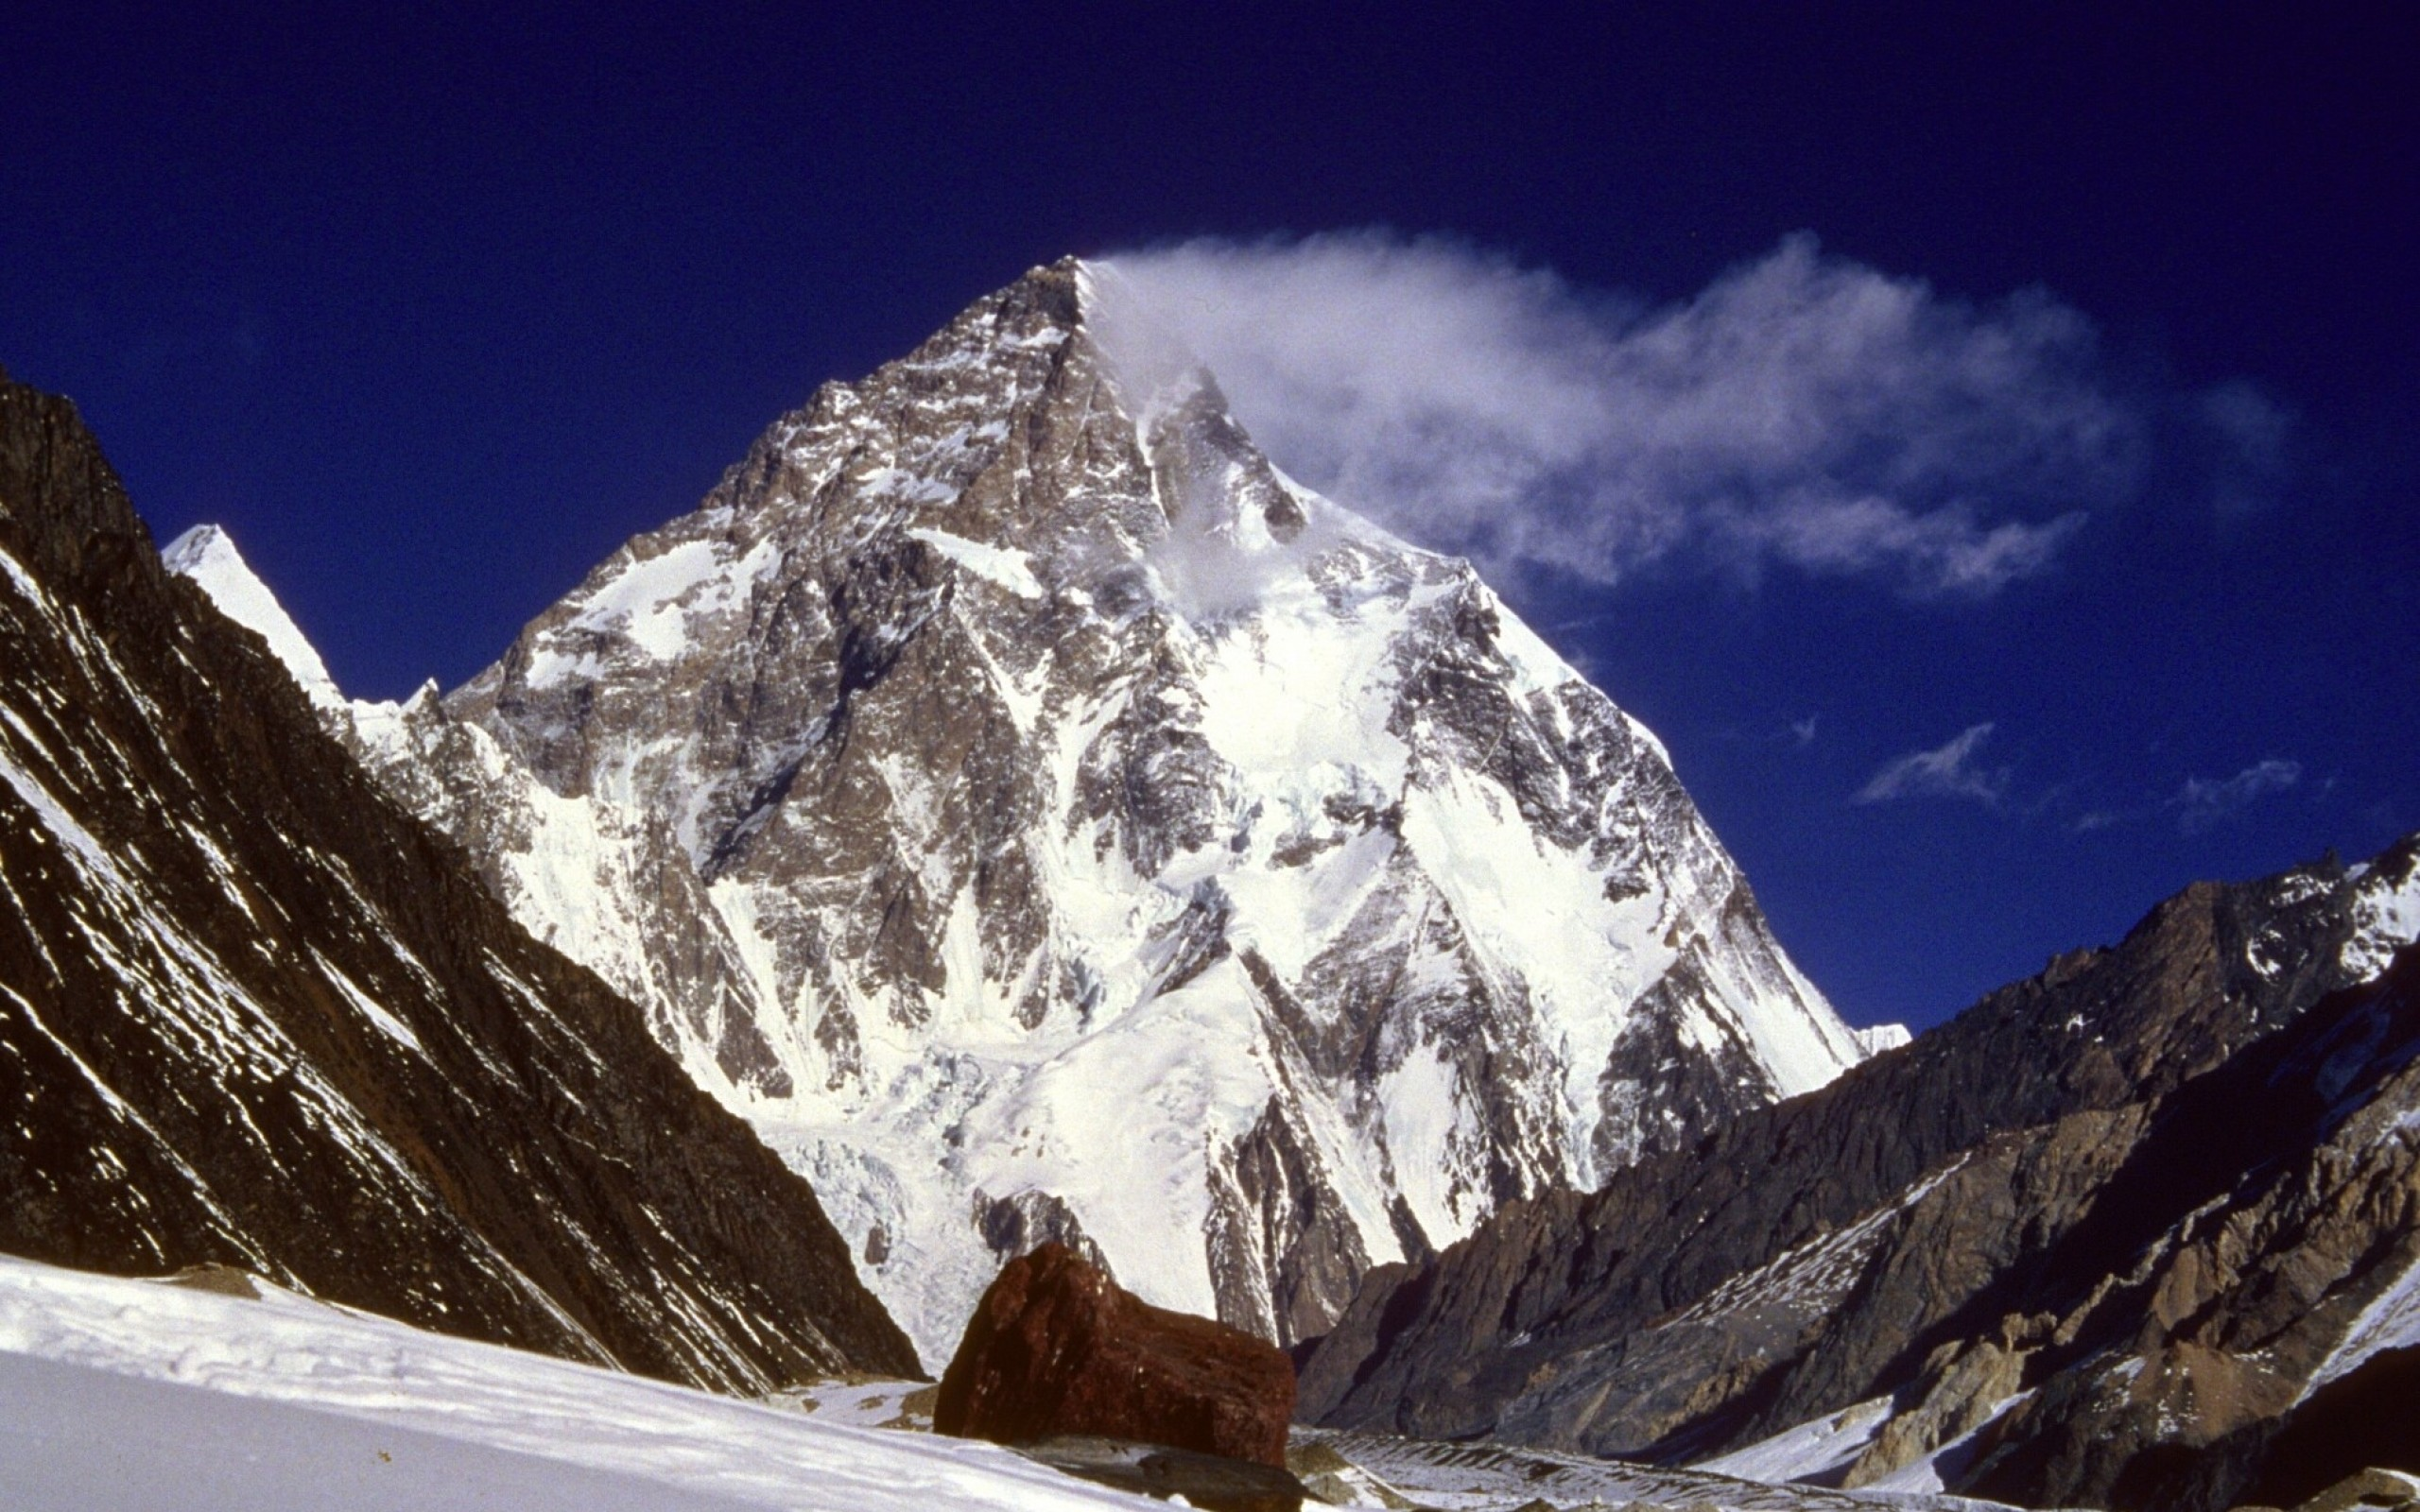 2560x1600 Mount Everest, Ice, Mist, Nature, Landscape, Photography Wallpapers HD / Desktop and Mobile Backgrounds